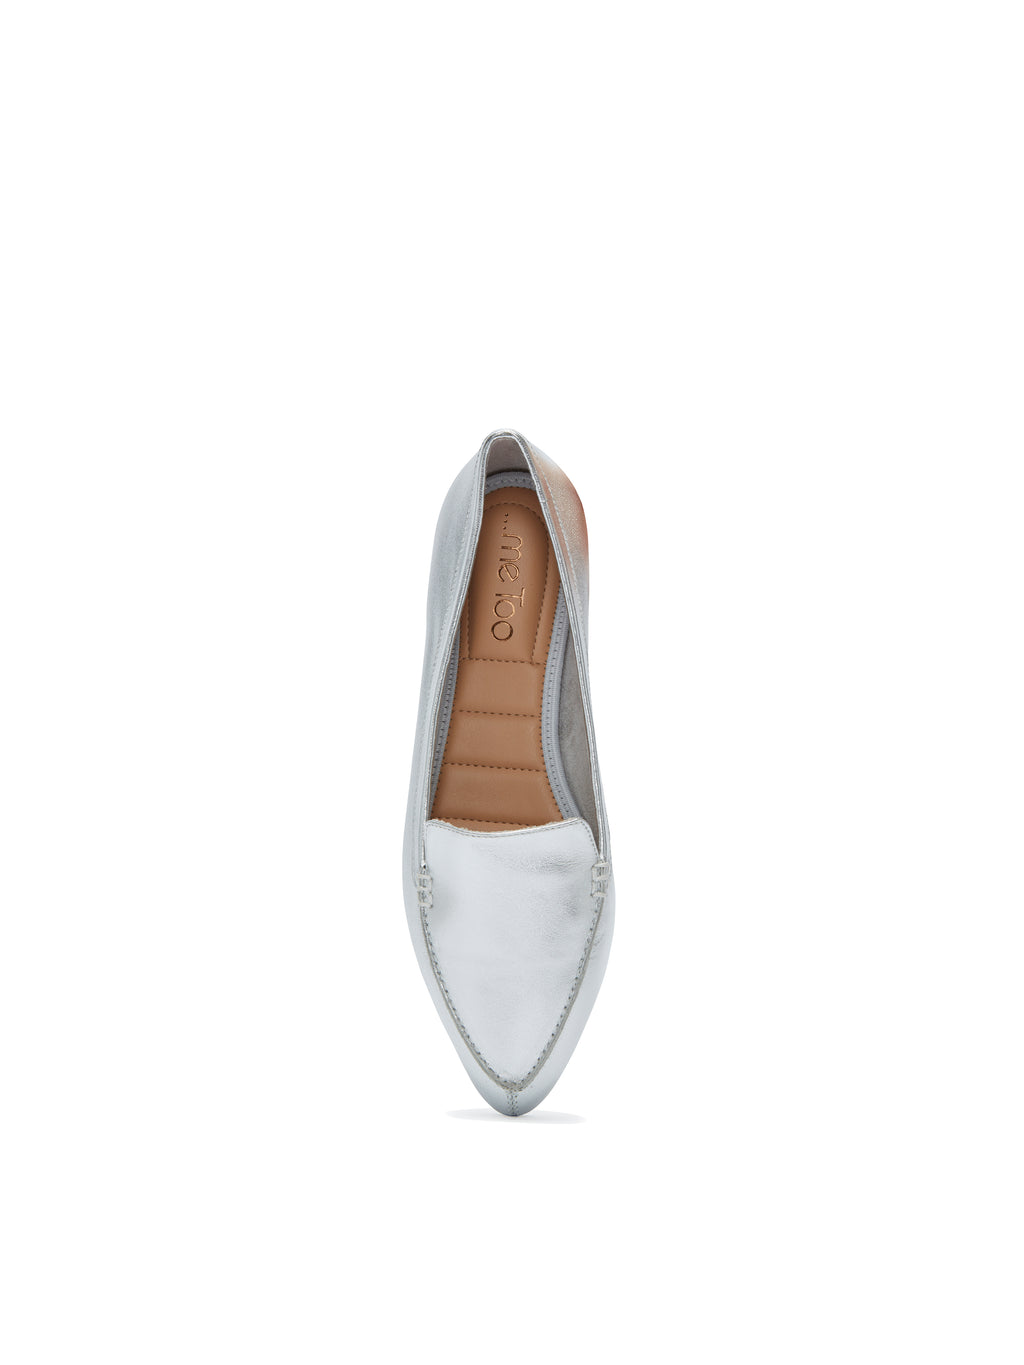 Audra Silver w/ White Bottom -  Loafer - ...me Too